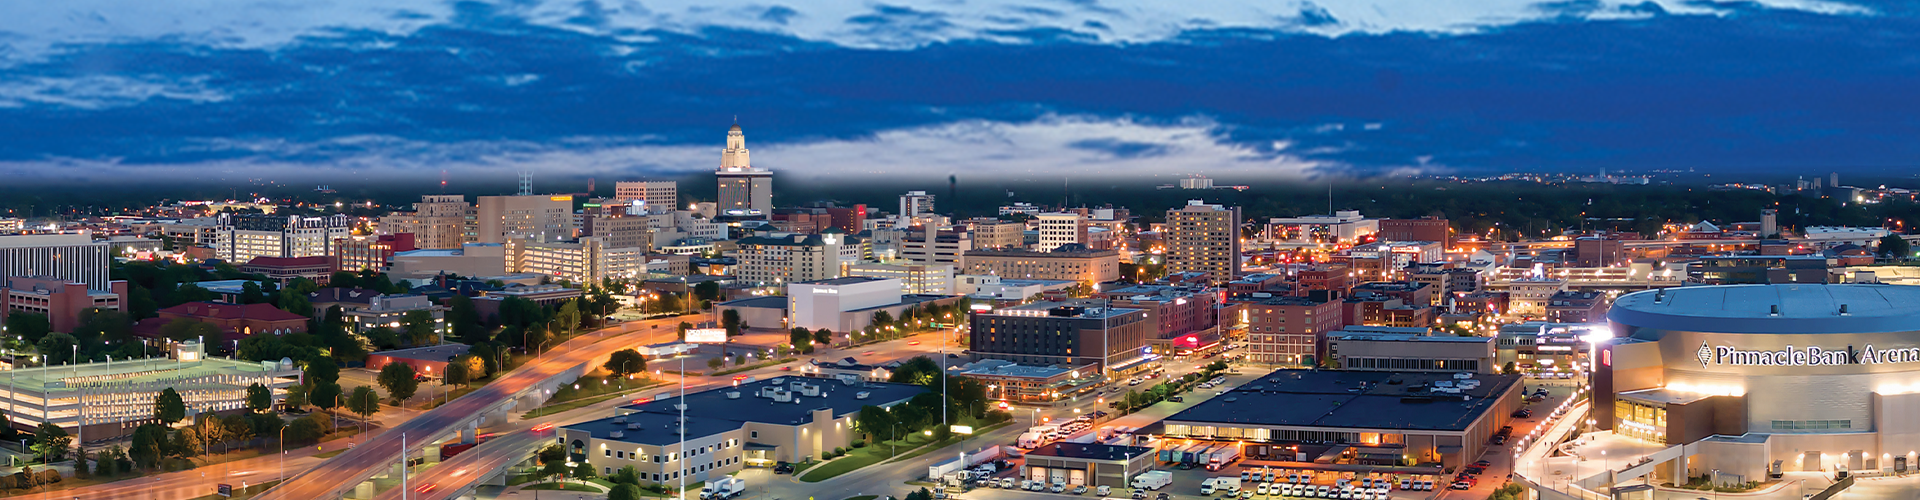 panorama of downtown lincoln